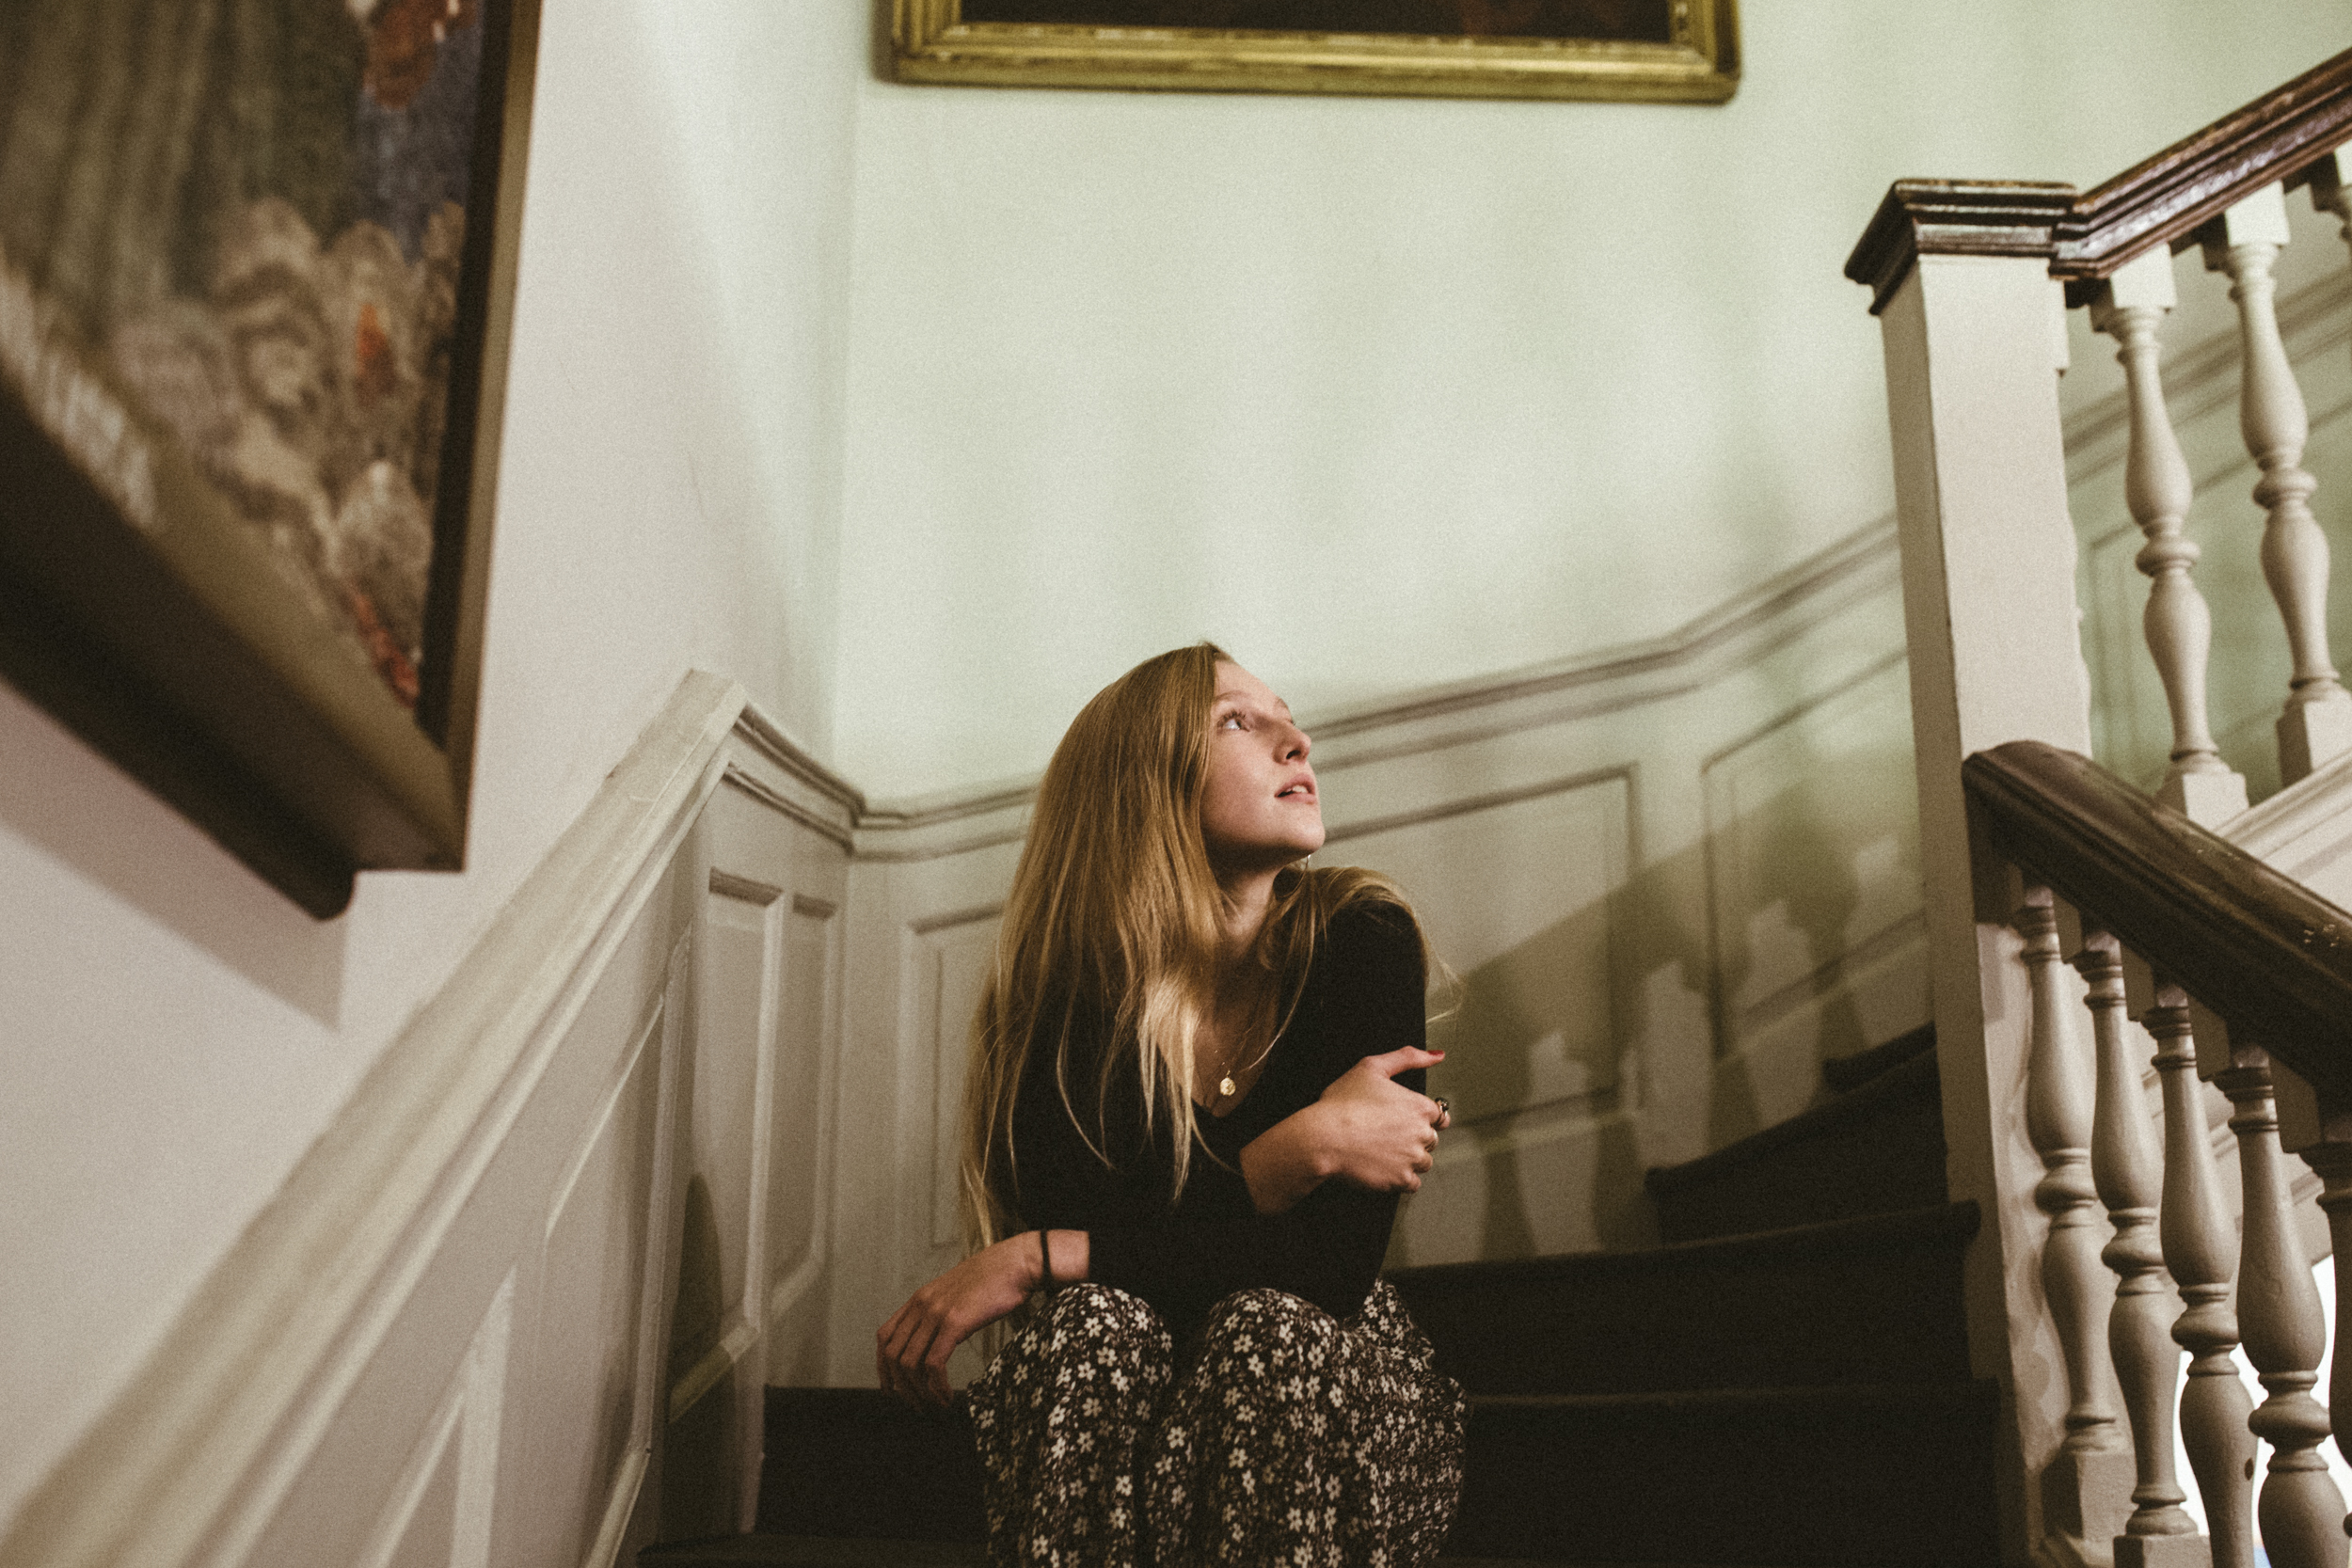 Billie Marten @ St Giles In-The-Fields Church